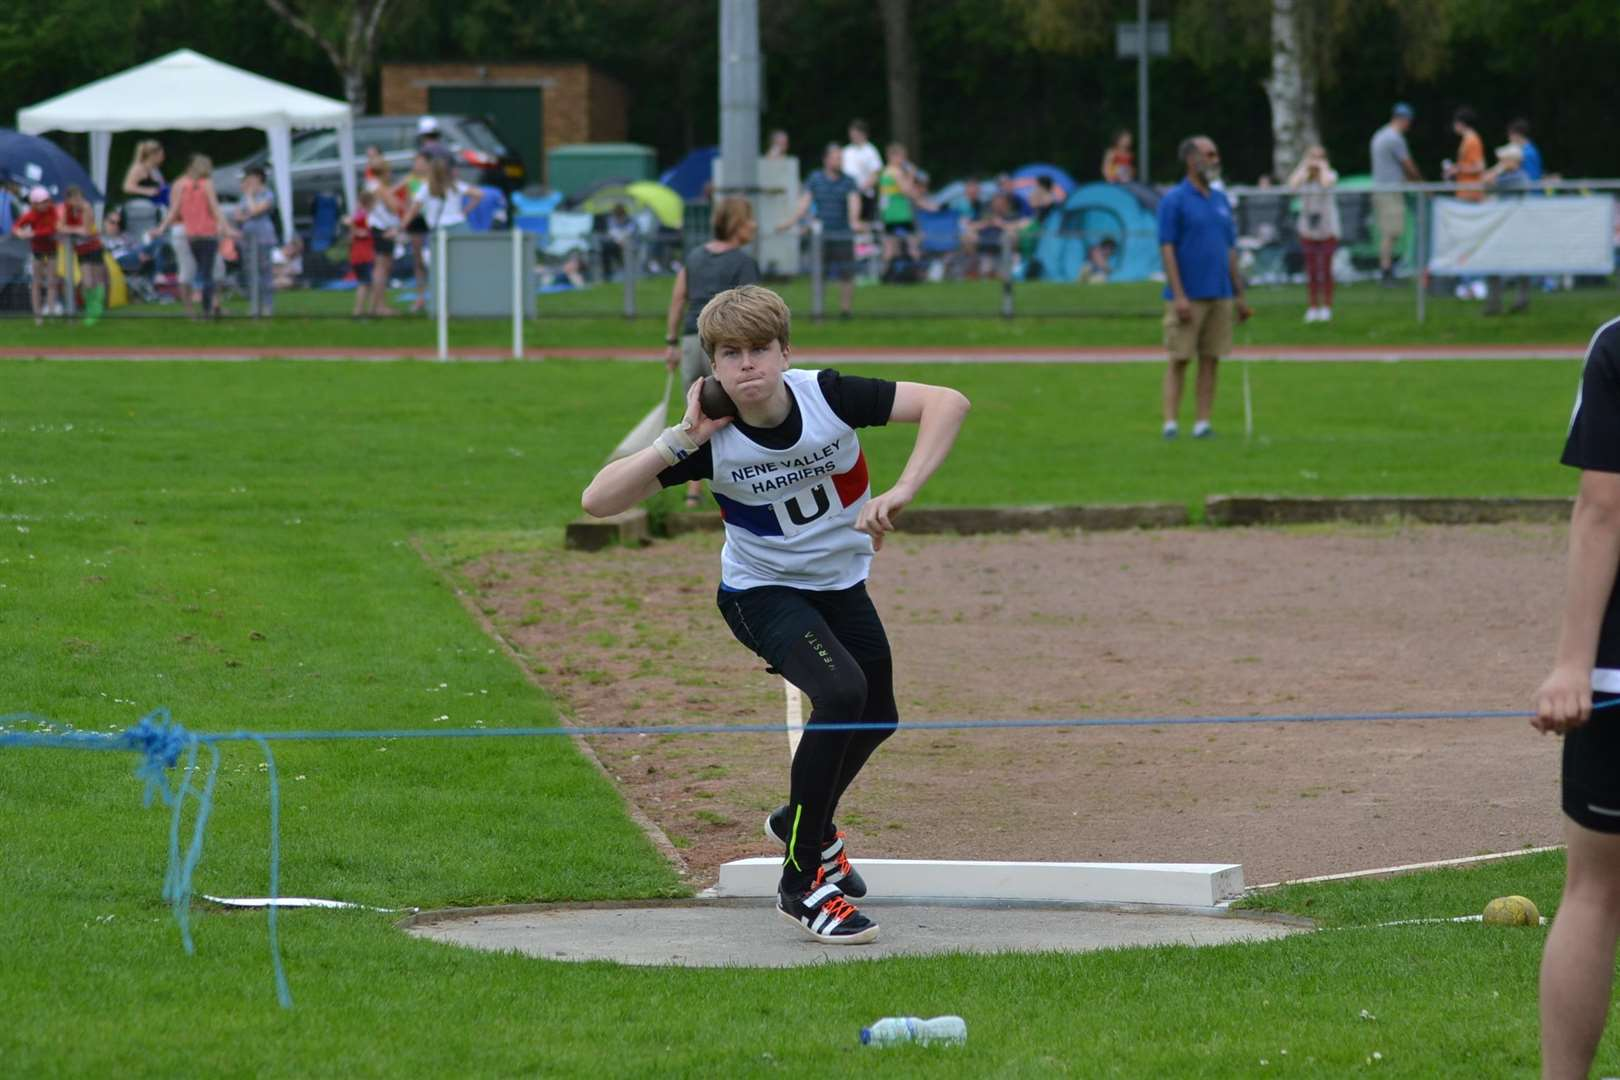 Donovan Capes set a new under-15 shot put personal best of 13.33m. at an open meeting in Kettering at the weekend.